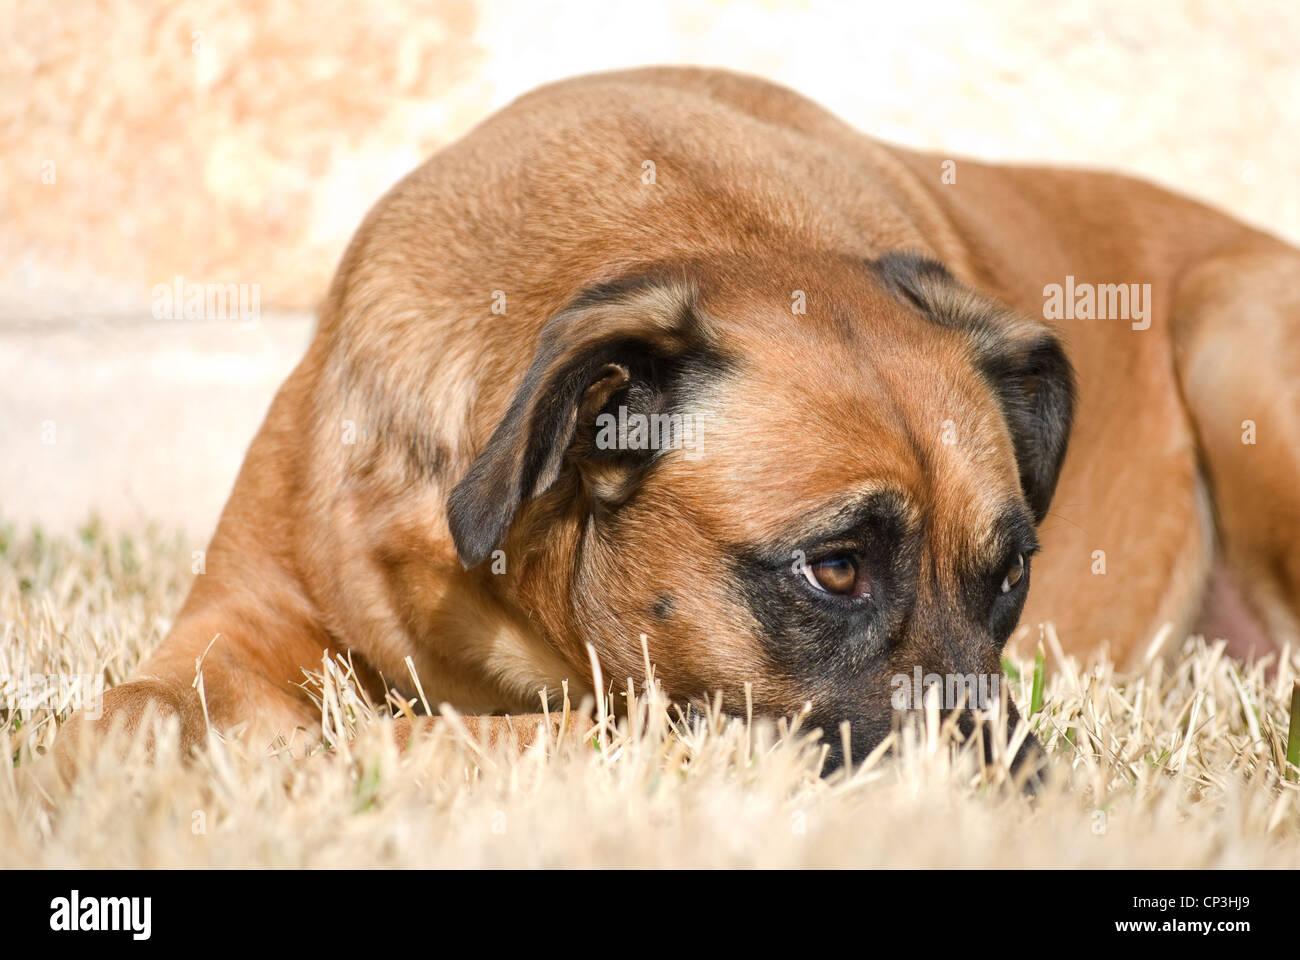 Chien avec Expression penaud Photo Stock